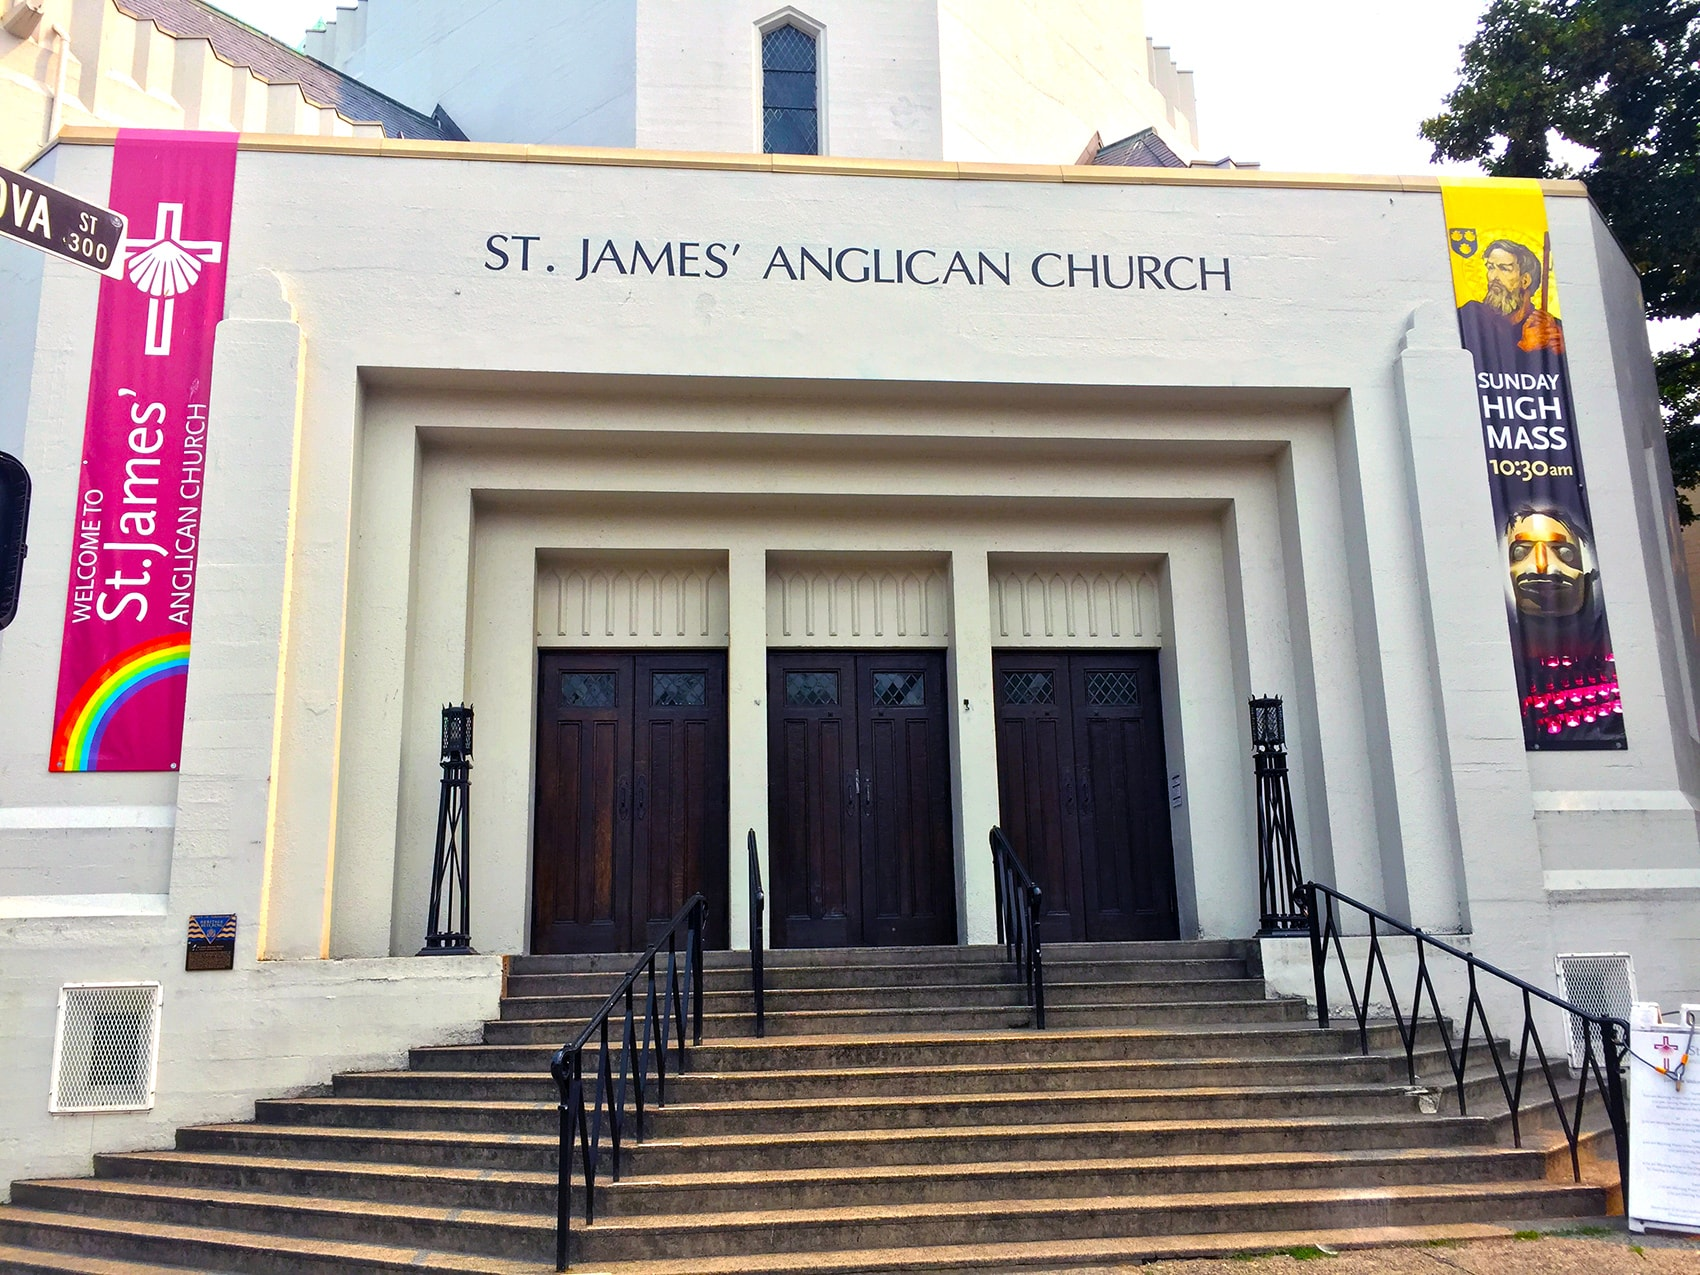 stjames-anglican-church-vancouver-min